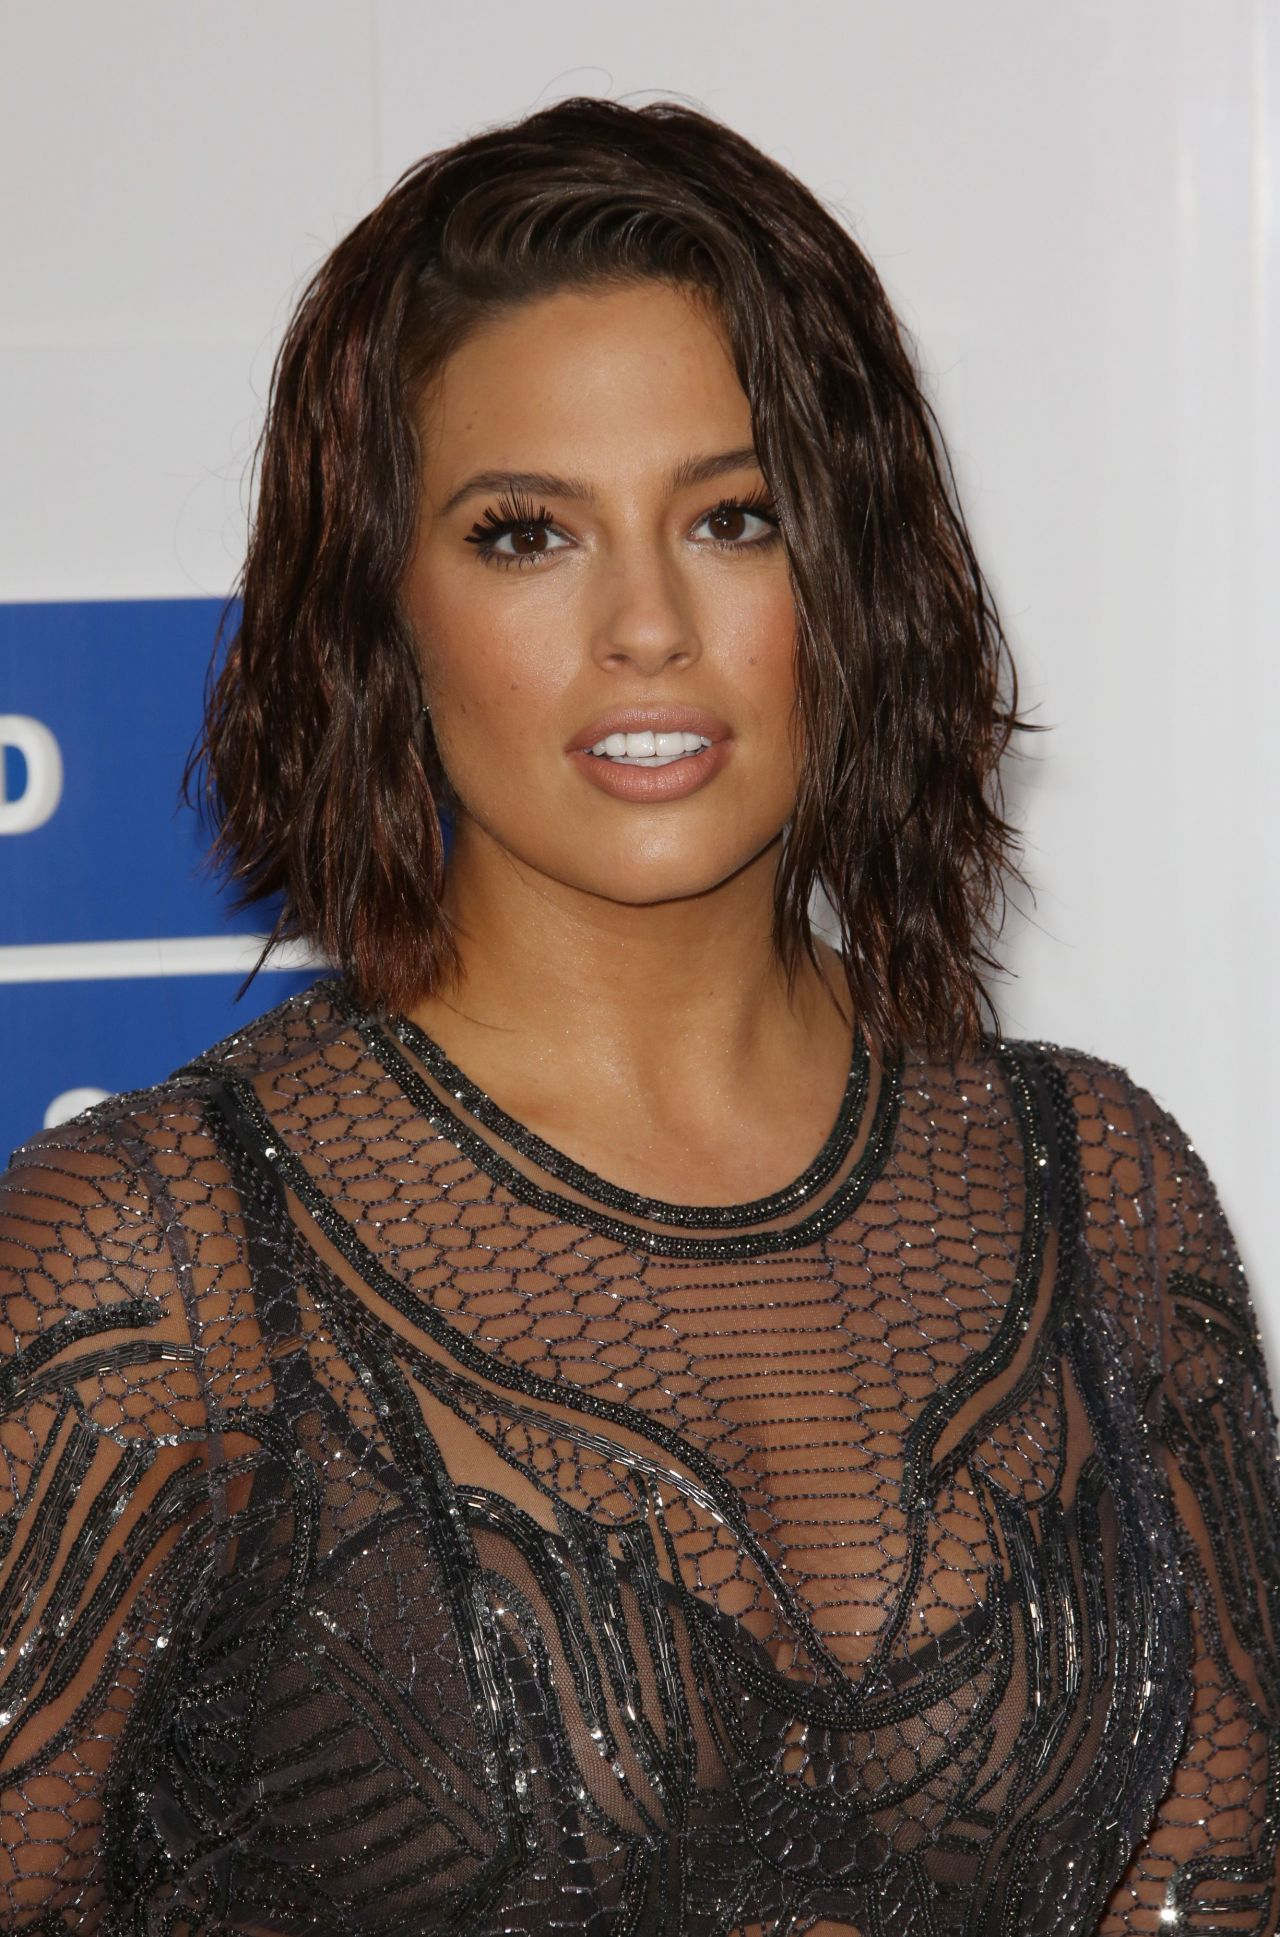 Ashley Graham Nude Photos 2